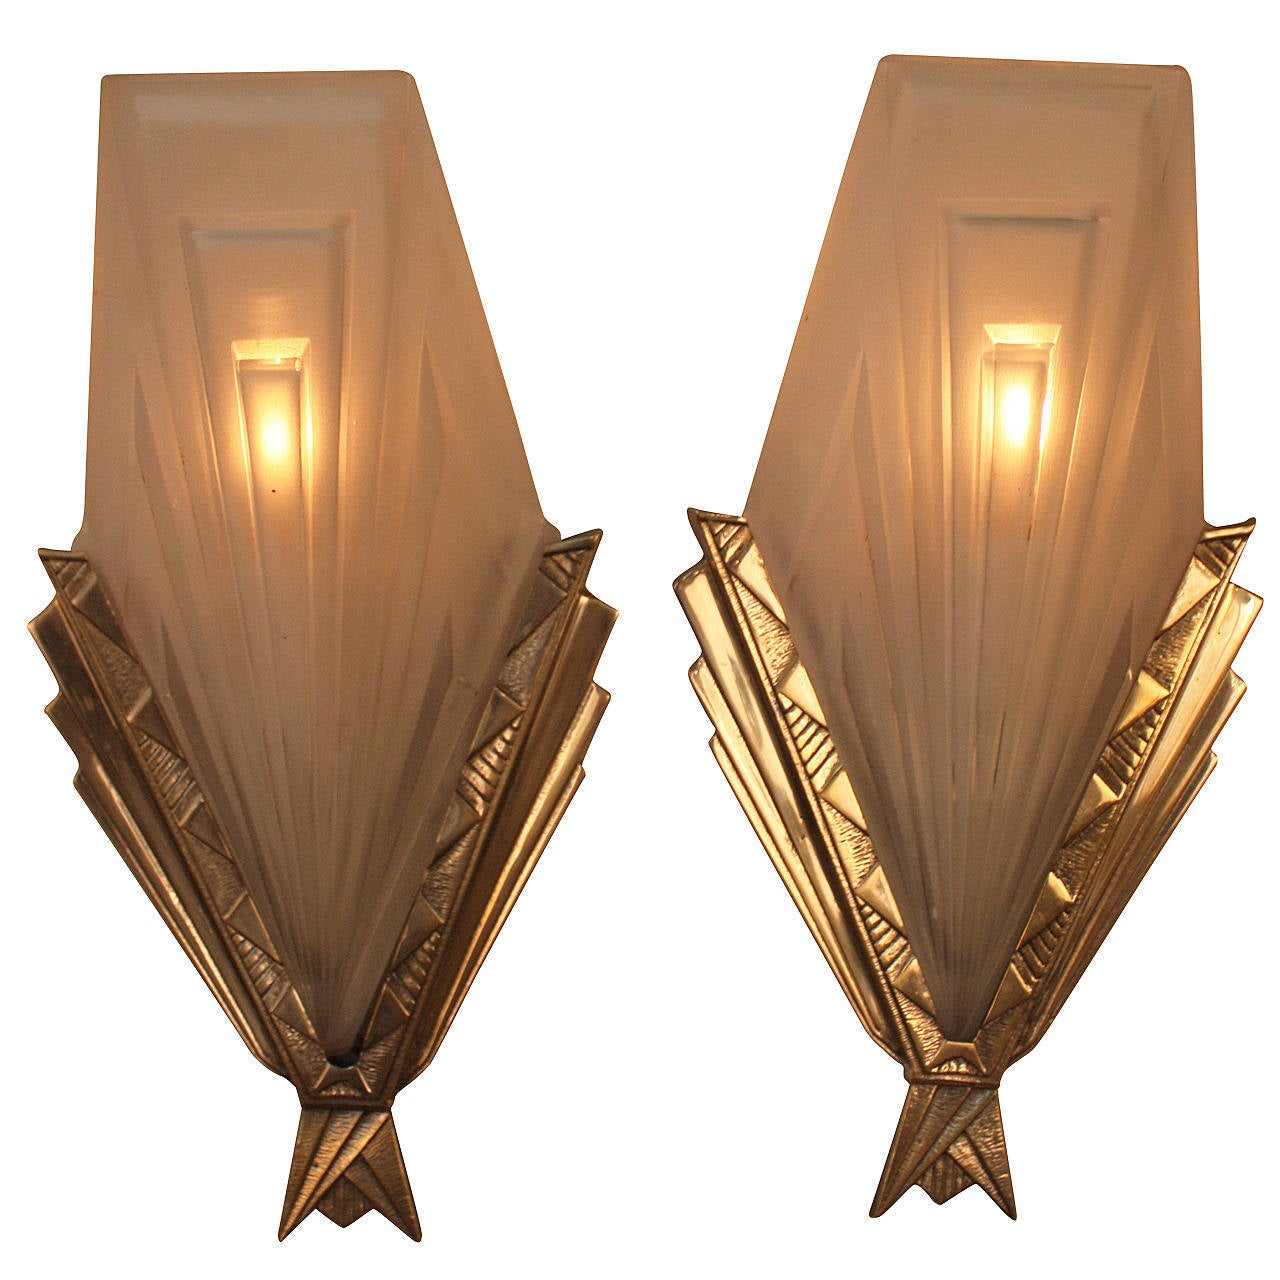 Wall Sconces Art Deco : French Art Deco Wall Sconces by Degue at 1stdibs